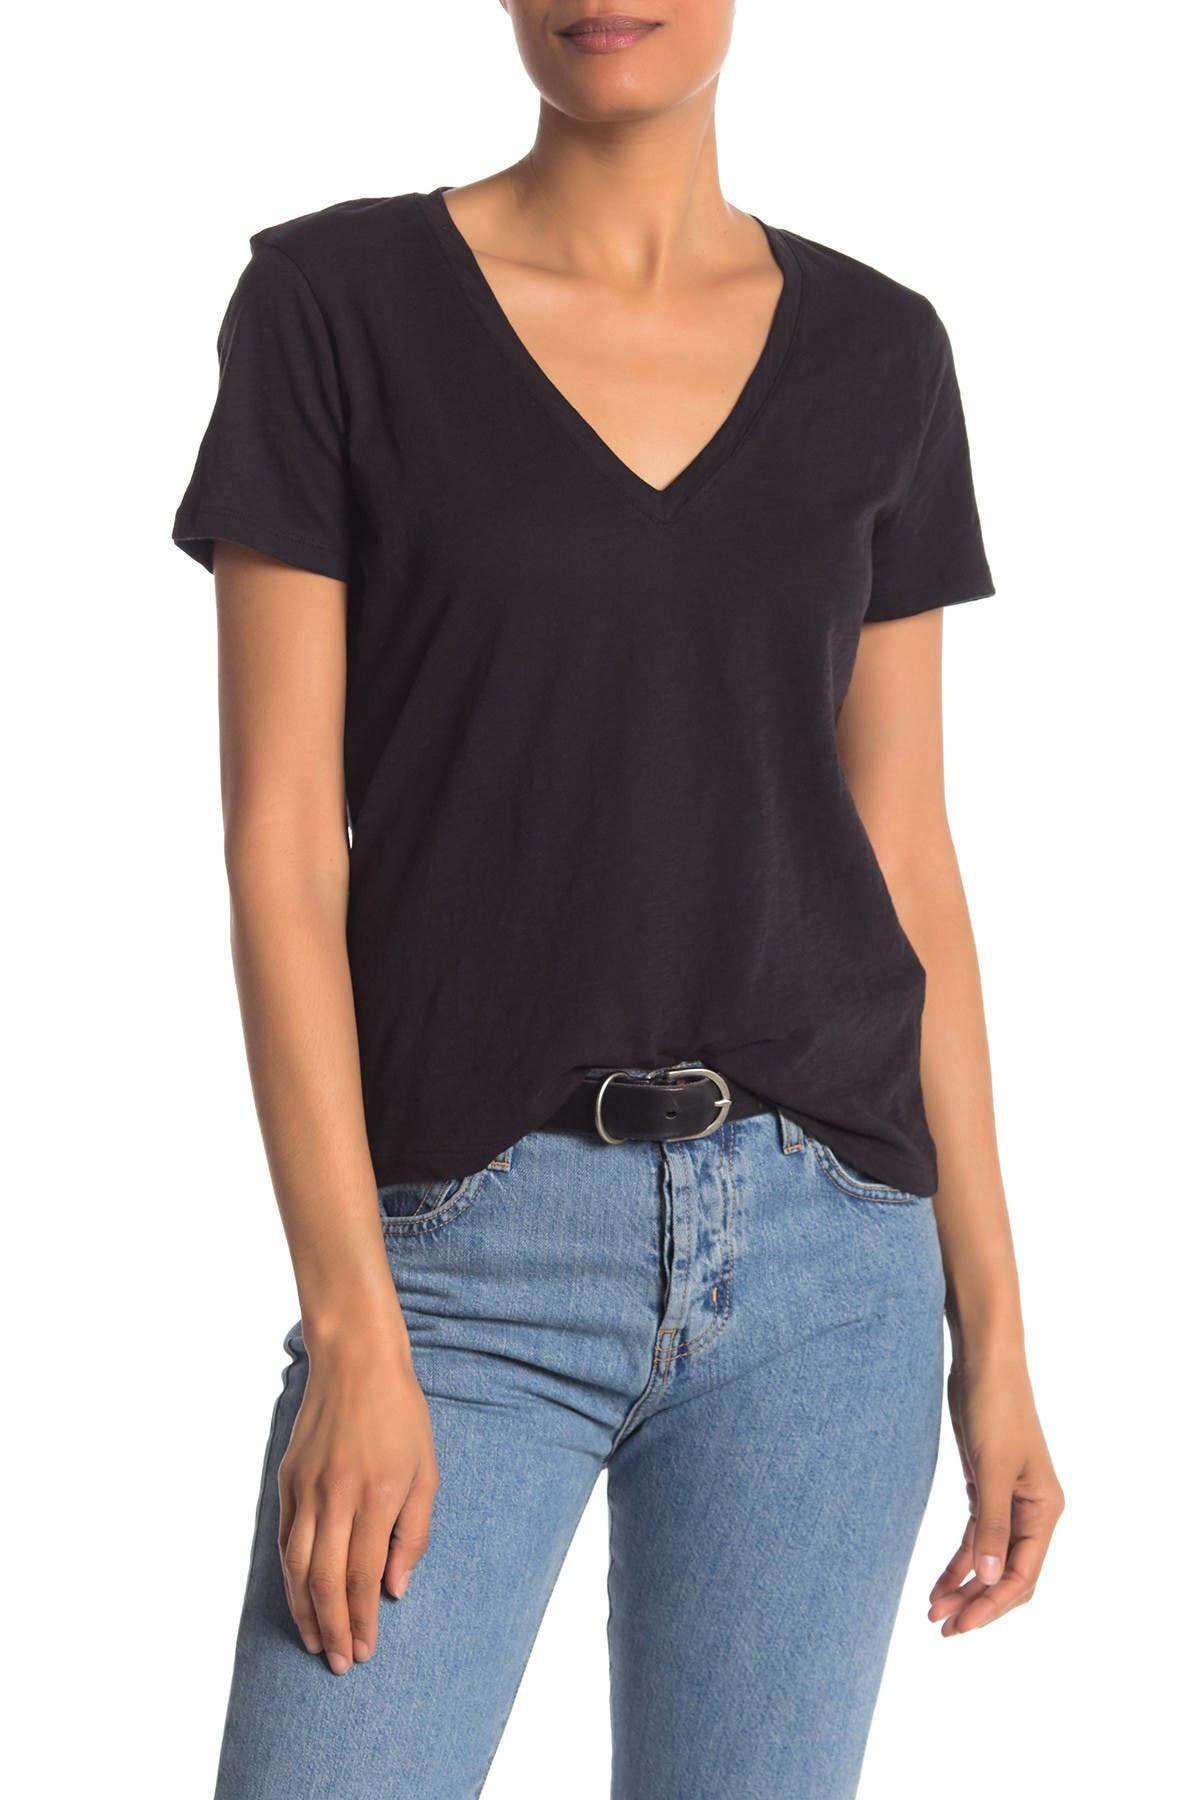 Image of Madewell V-Neck Short Sleeve T-Shirt